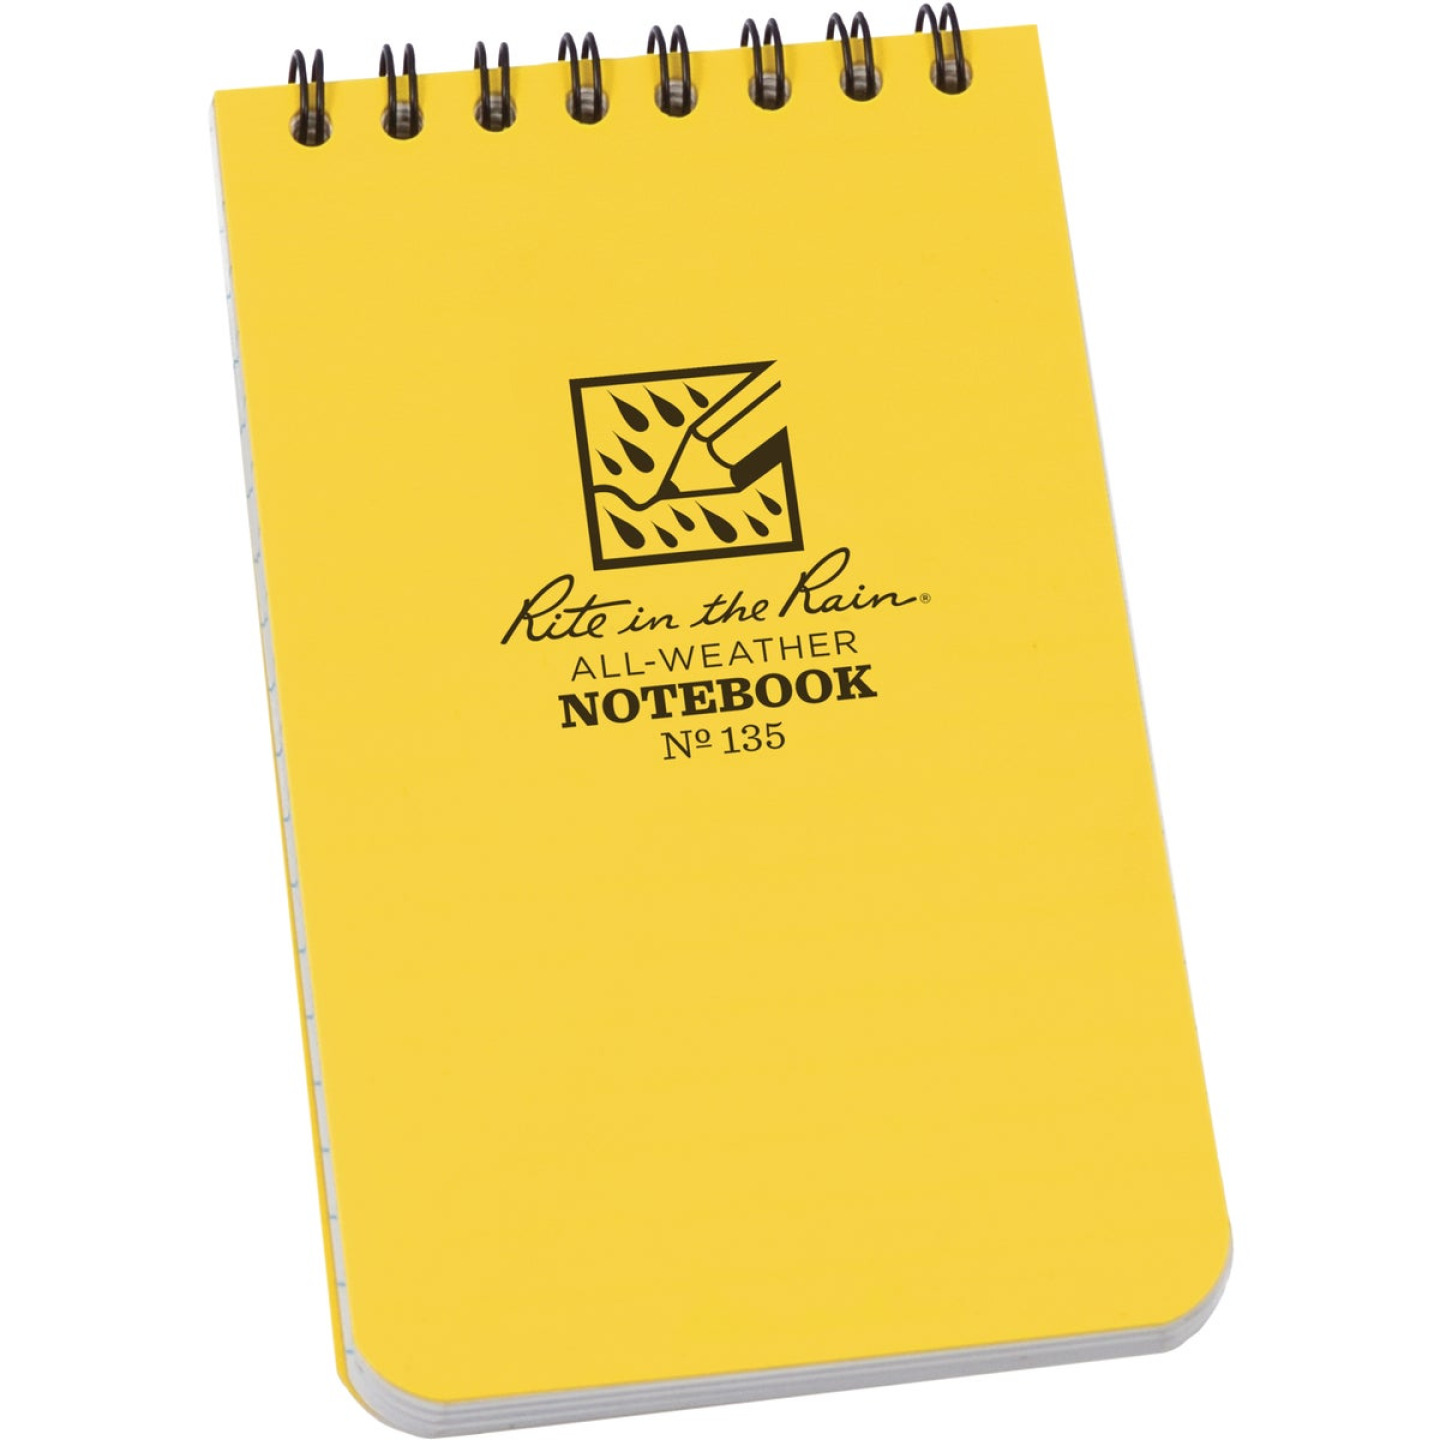 Rite in the Rain 3 In. W x 5 In. H Yellow 50-Sheet Top Spiral Bound All-Weather Memo Pad Image 1